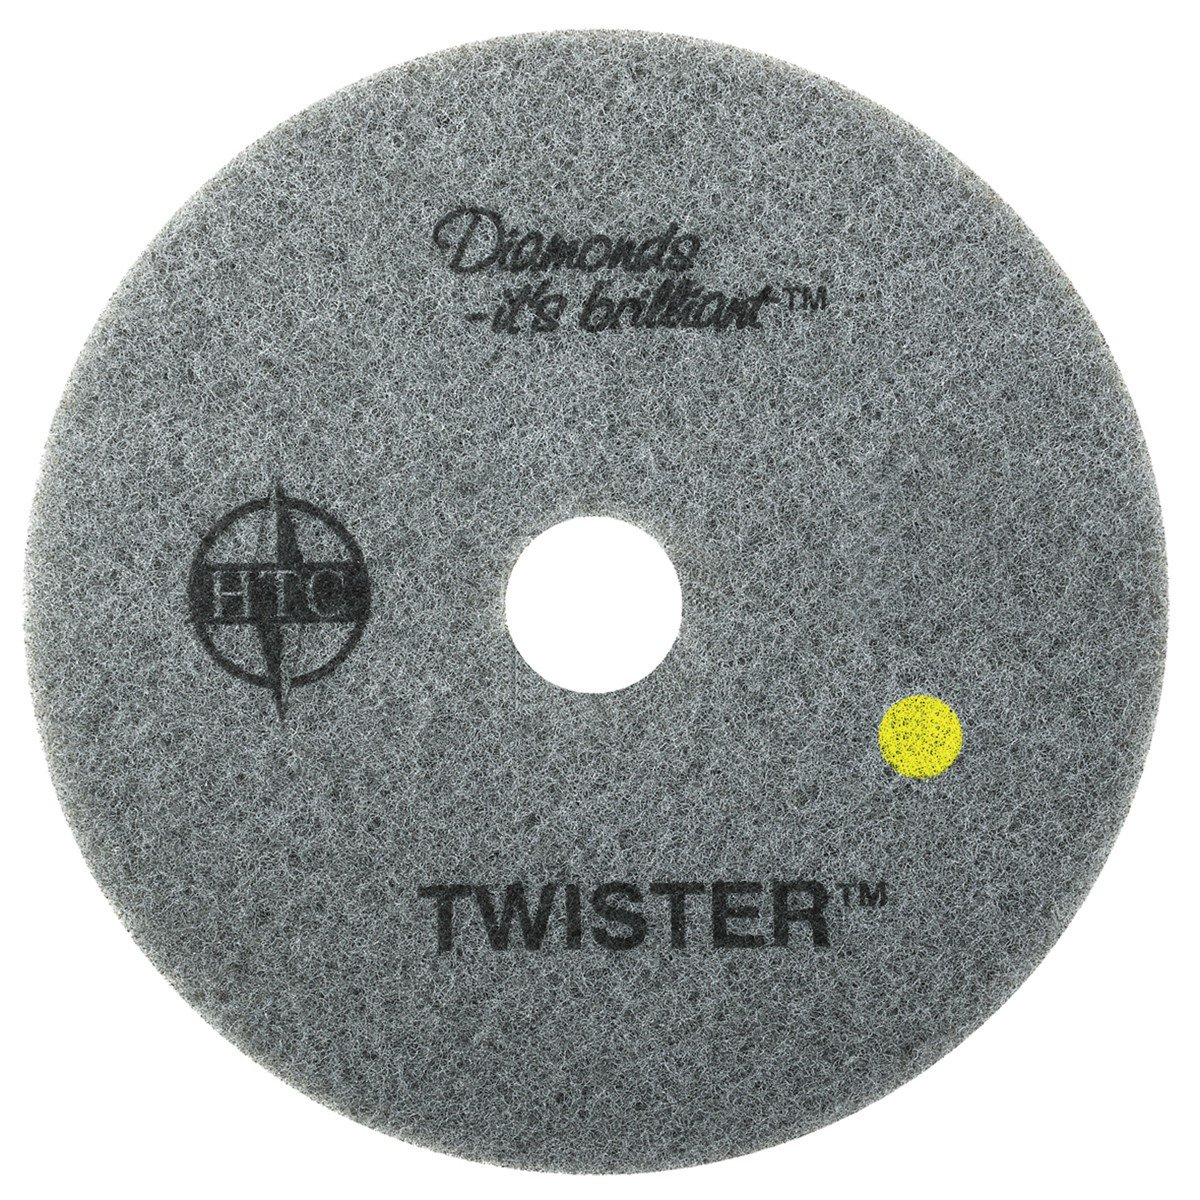 Twister Diamond Cleaning System 24'' Yellow Floor Pad - 1500 Grit - 2 per case